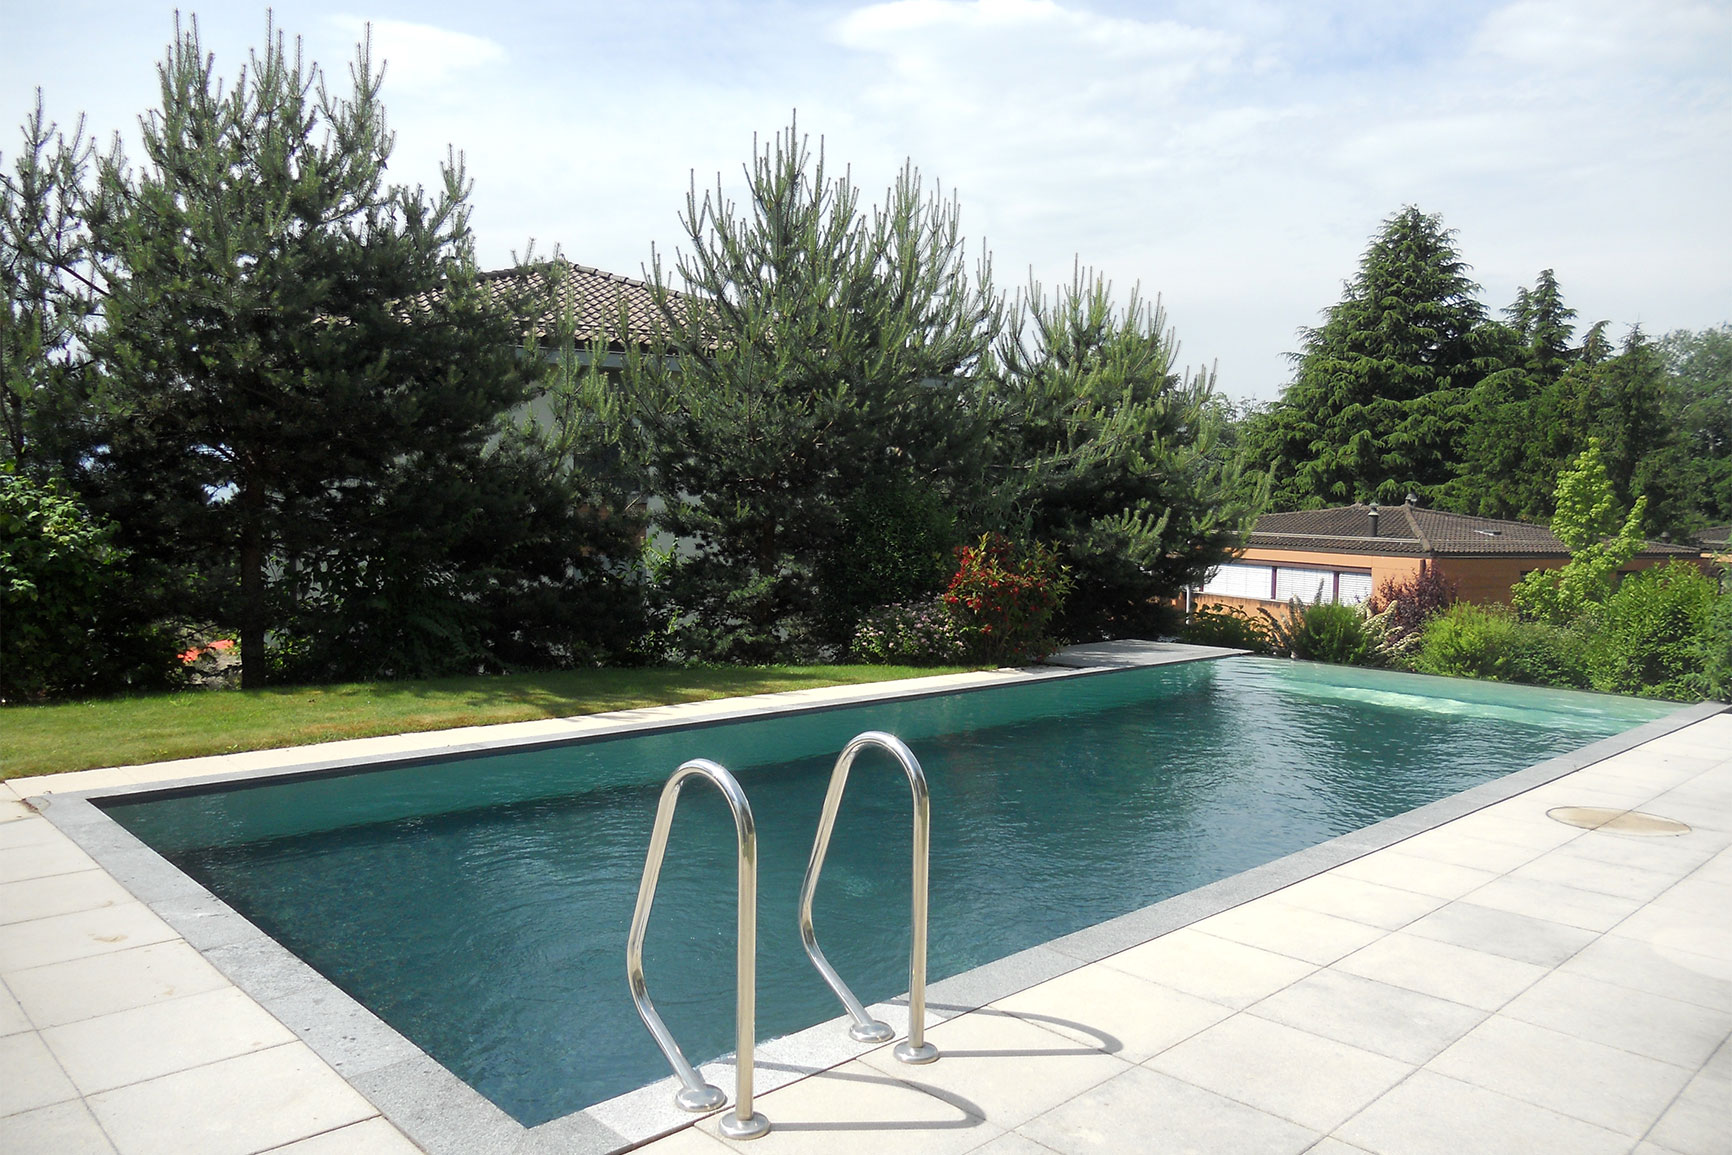 D bordement carrelage piscines widmer for Chavannes piscine